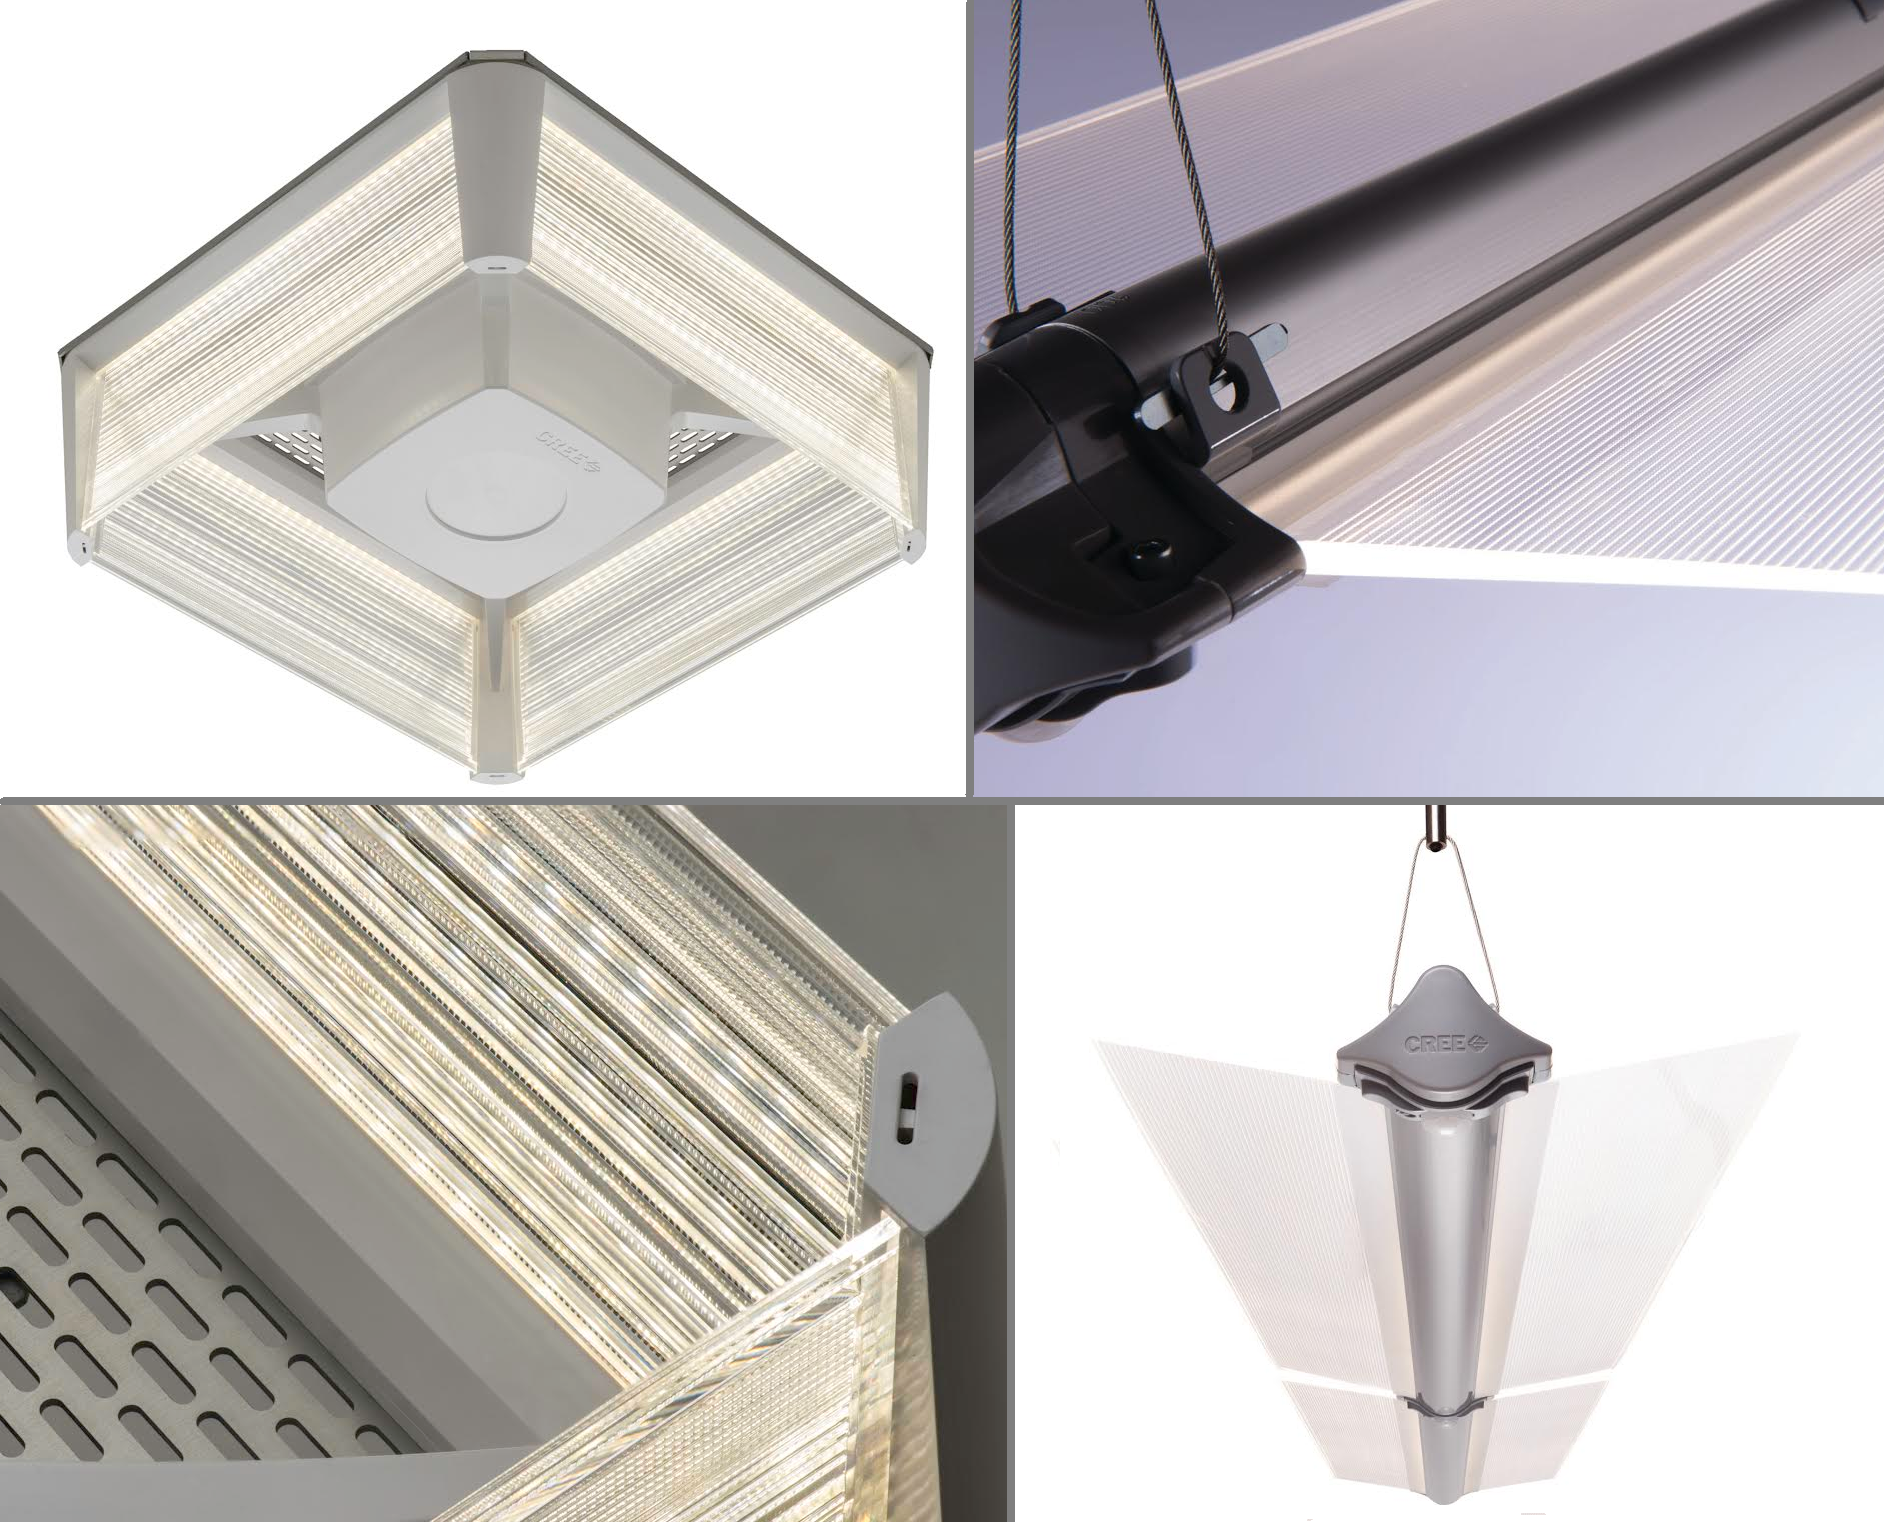 Luminaire Indirect intérieur suspended ambient luminaire simplifies installation and improves